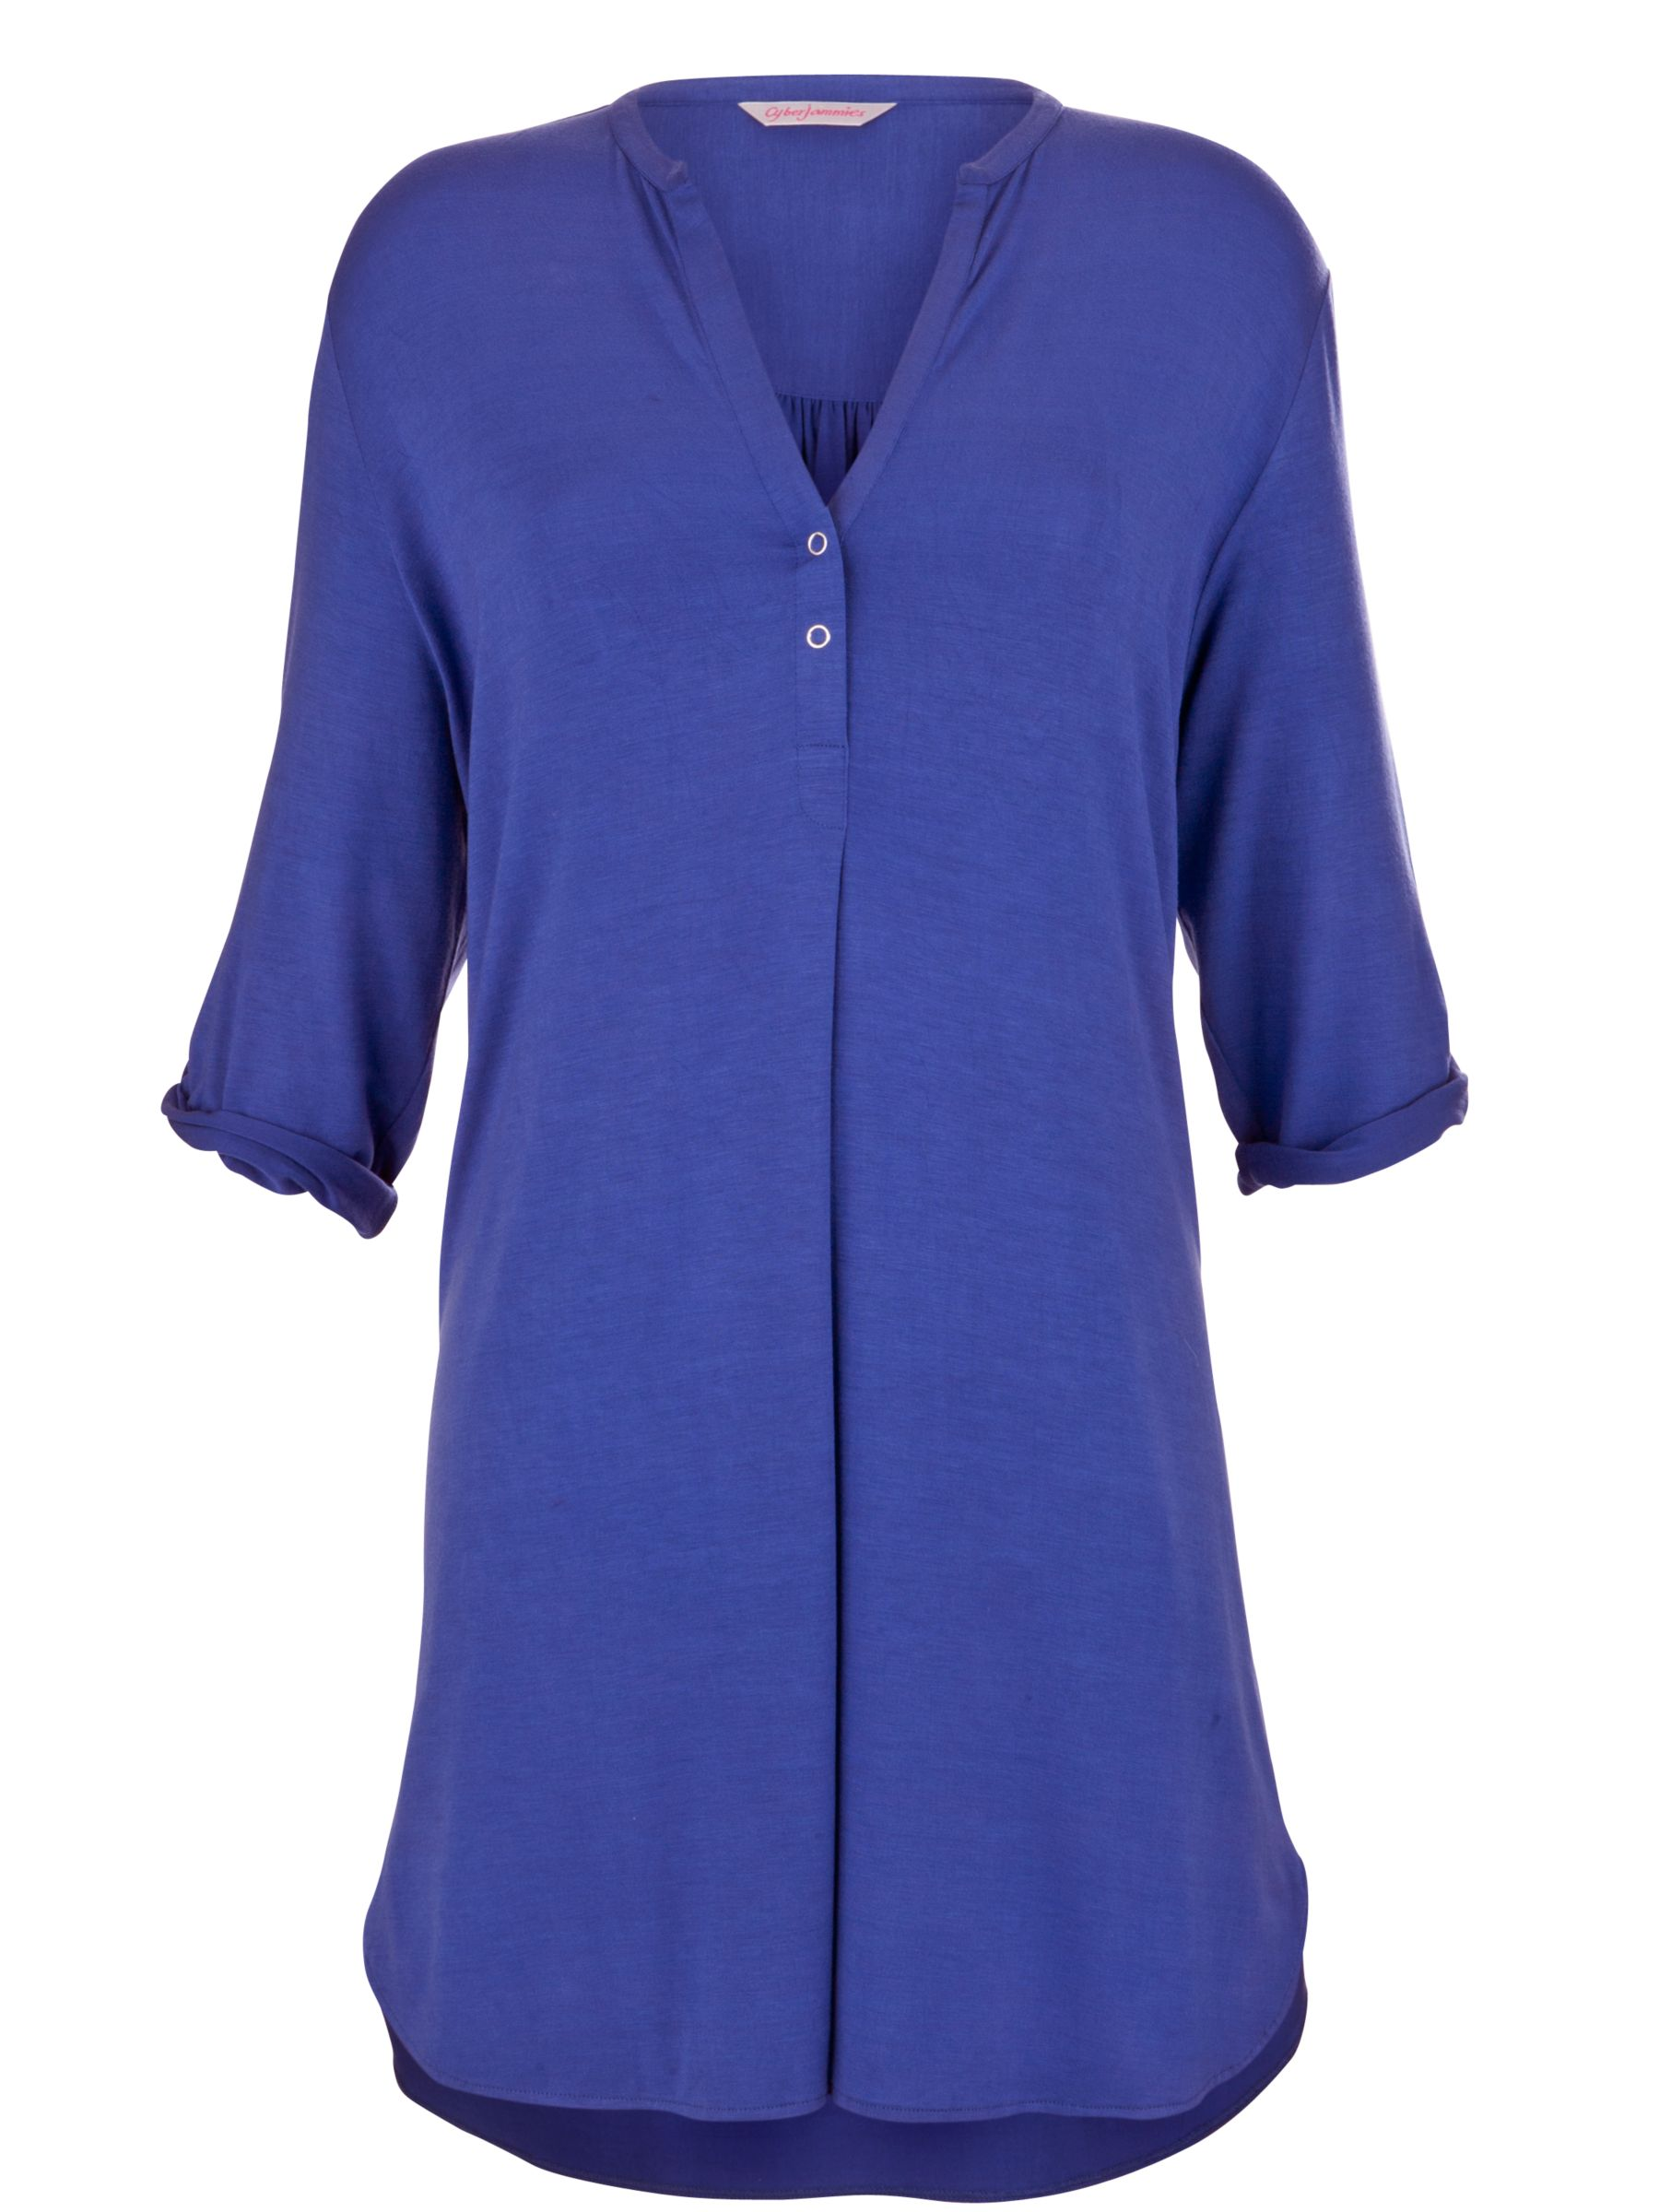 Cyberjammies Cornflower Nightshirt, Blue